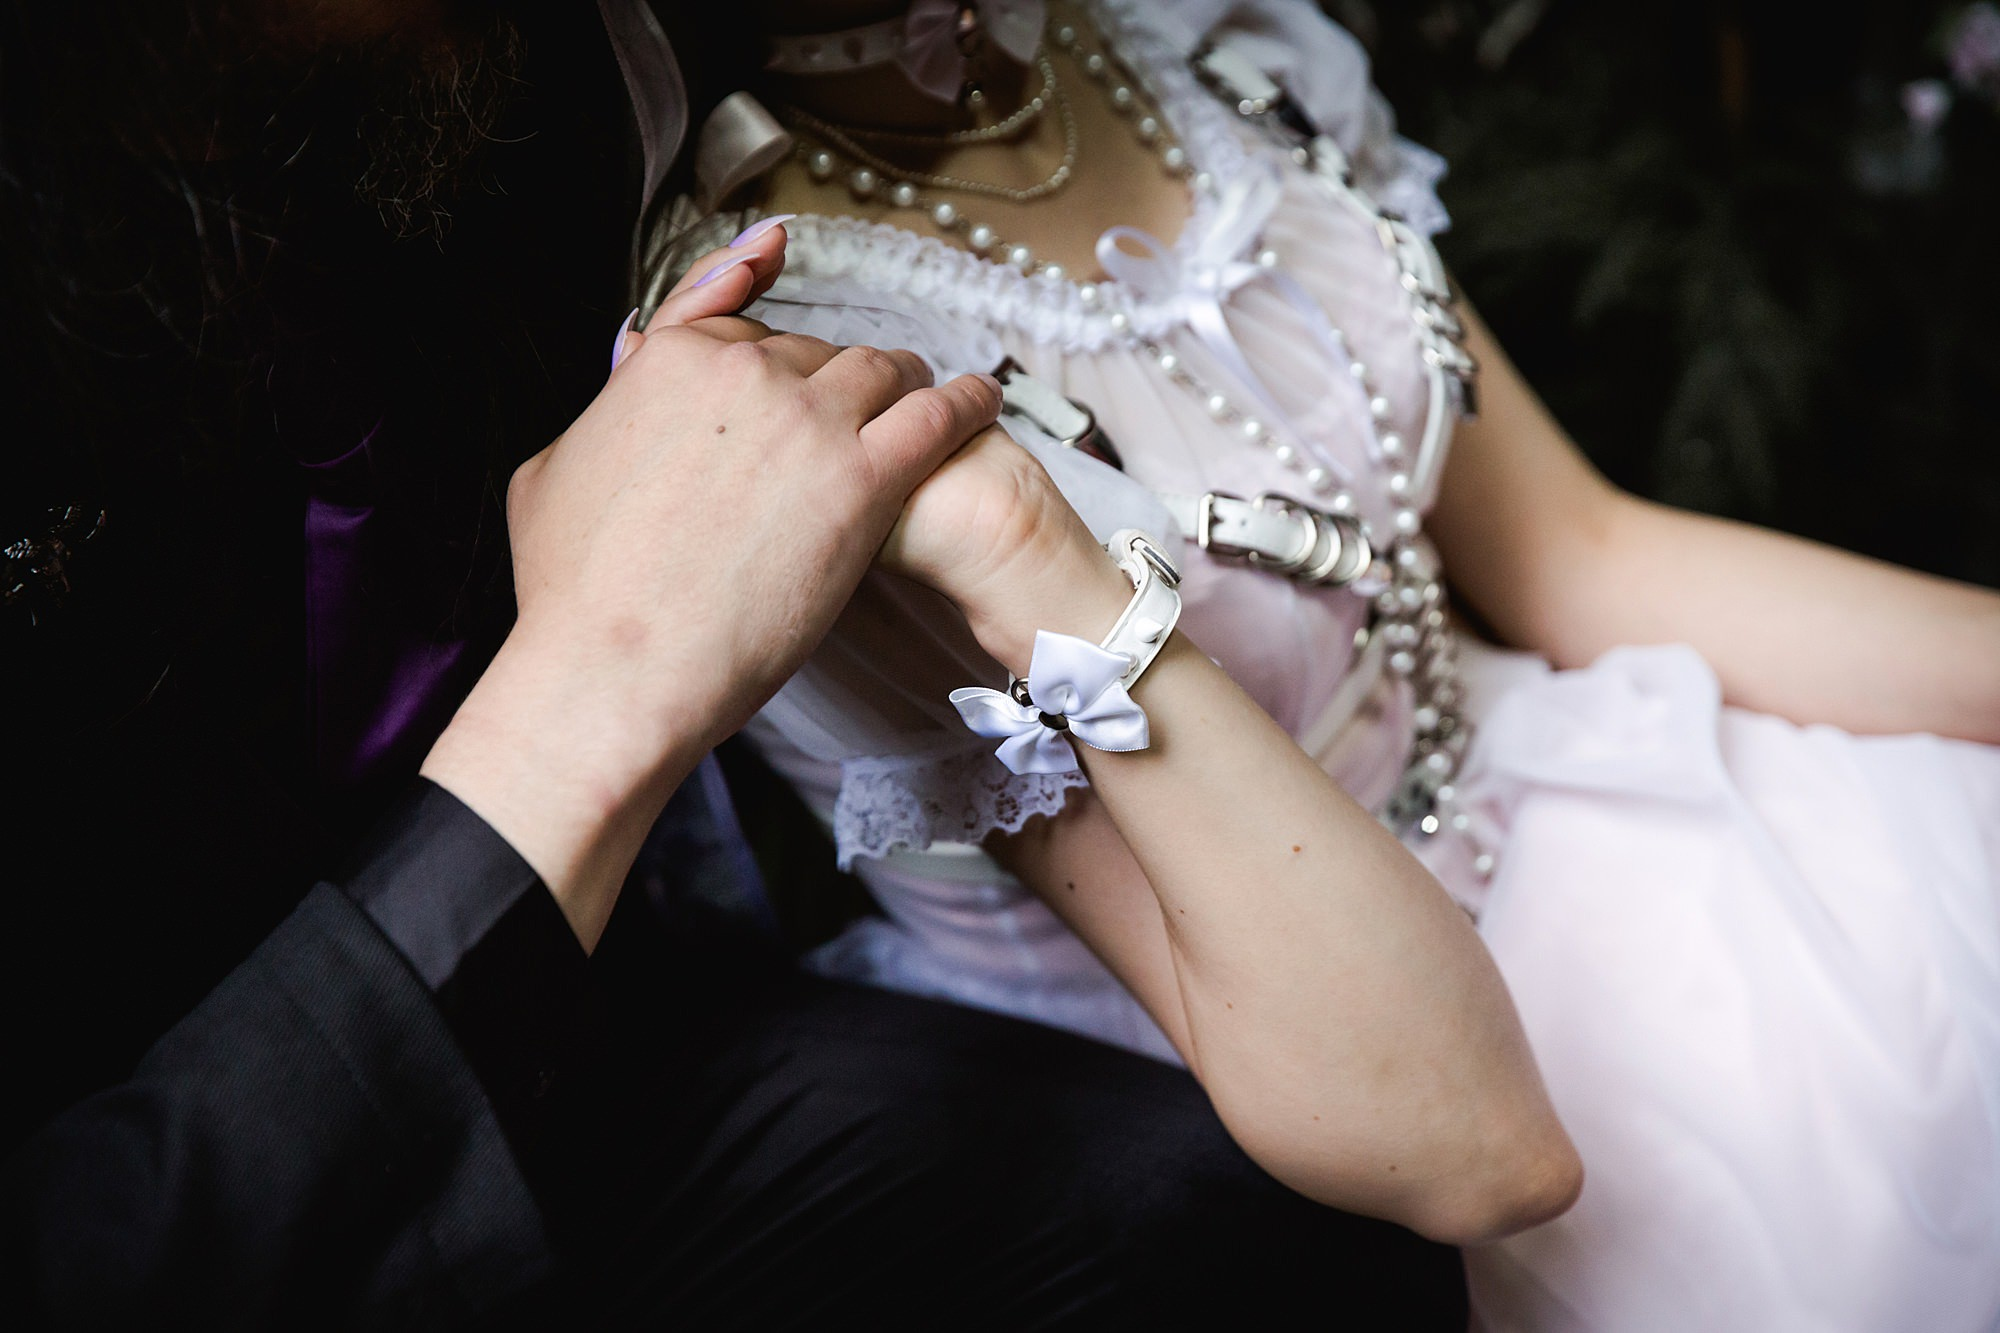 close up of bride's hand with wrist cuffs holding groom's hand a goth wedding